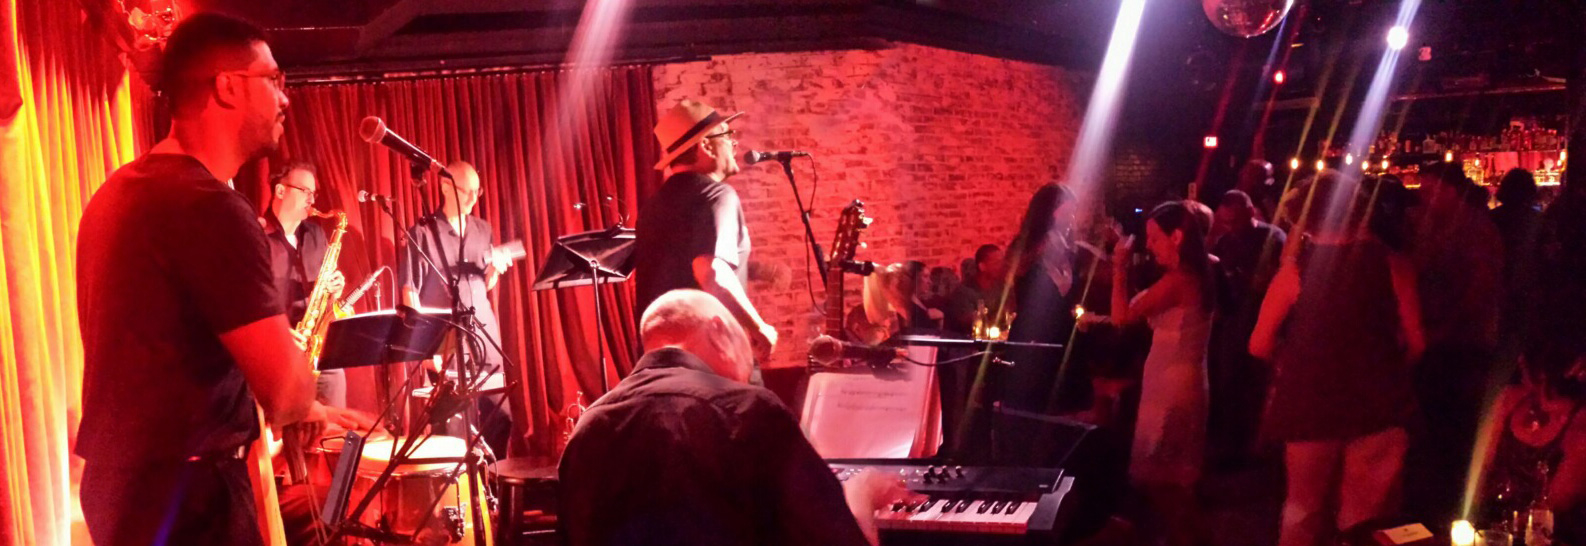 Sonido-Costeno-Salsa-orchestra-banner-shot-dancing-crowd-Subrosa-Blue-Note-Group-Highline-ballroom-club-Blue-Note-NYC